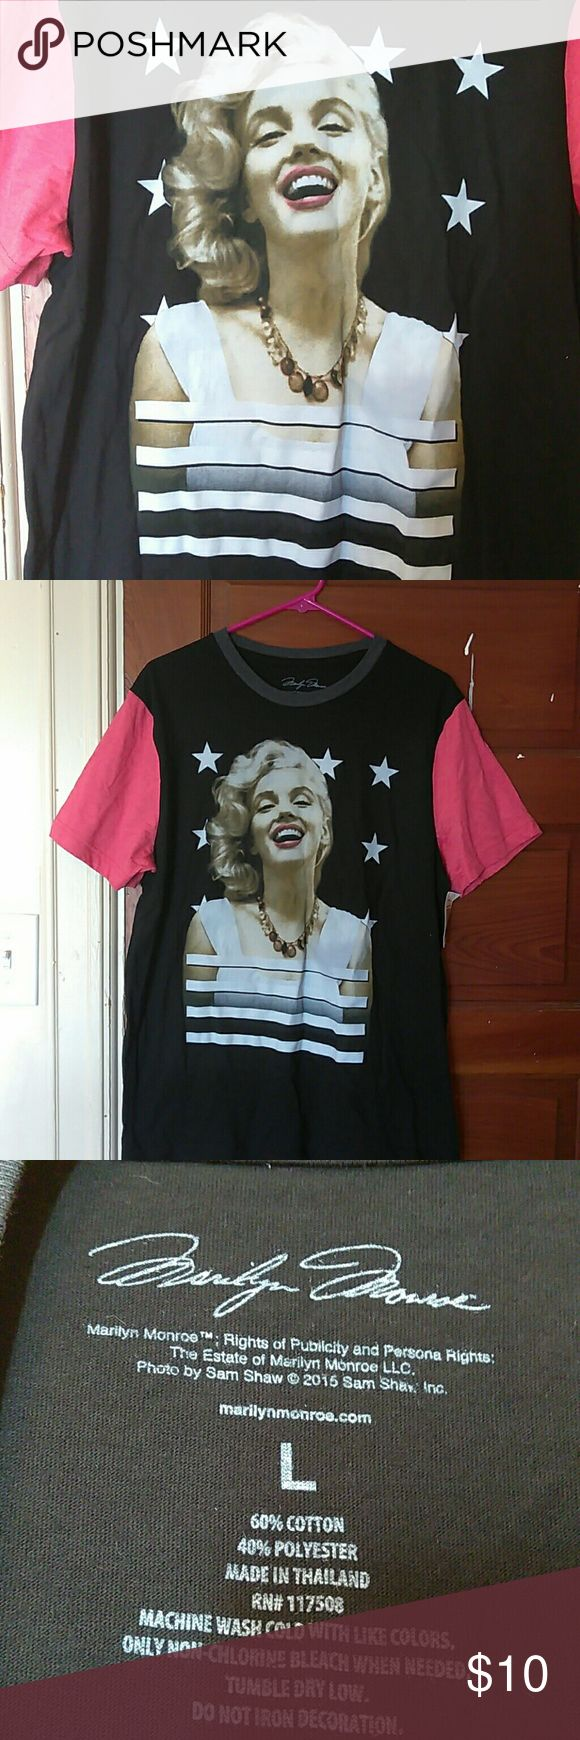 Marilyn Monroe T Shirt Mens New Large New shirt men's large. I brought it for myself (a woman for 4th of July but never worn it) Marilyn Monroe Shirts Tees - Short Sleeve